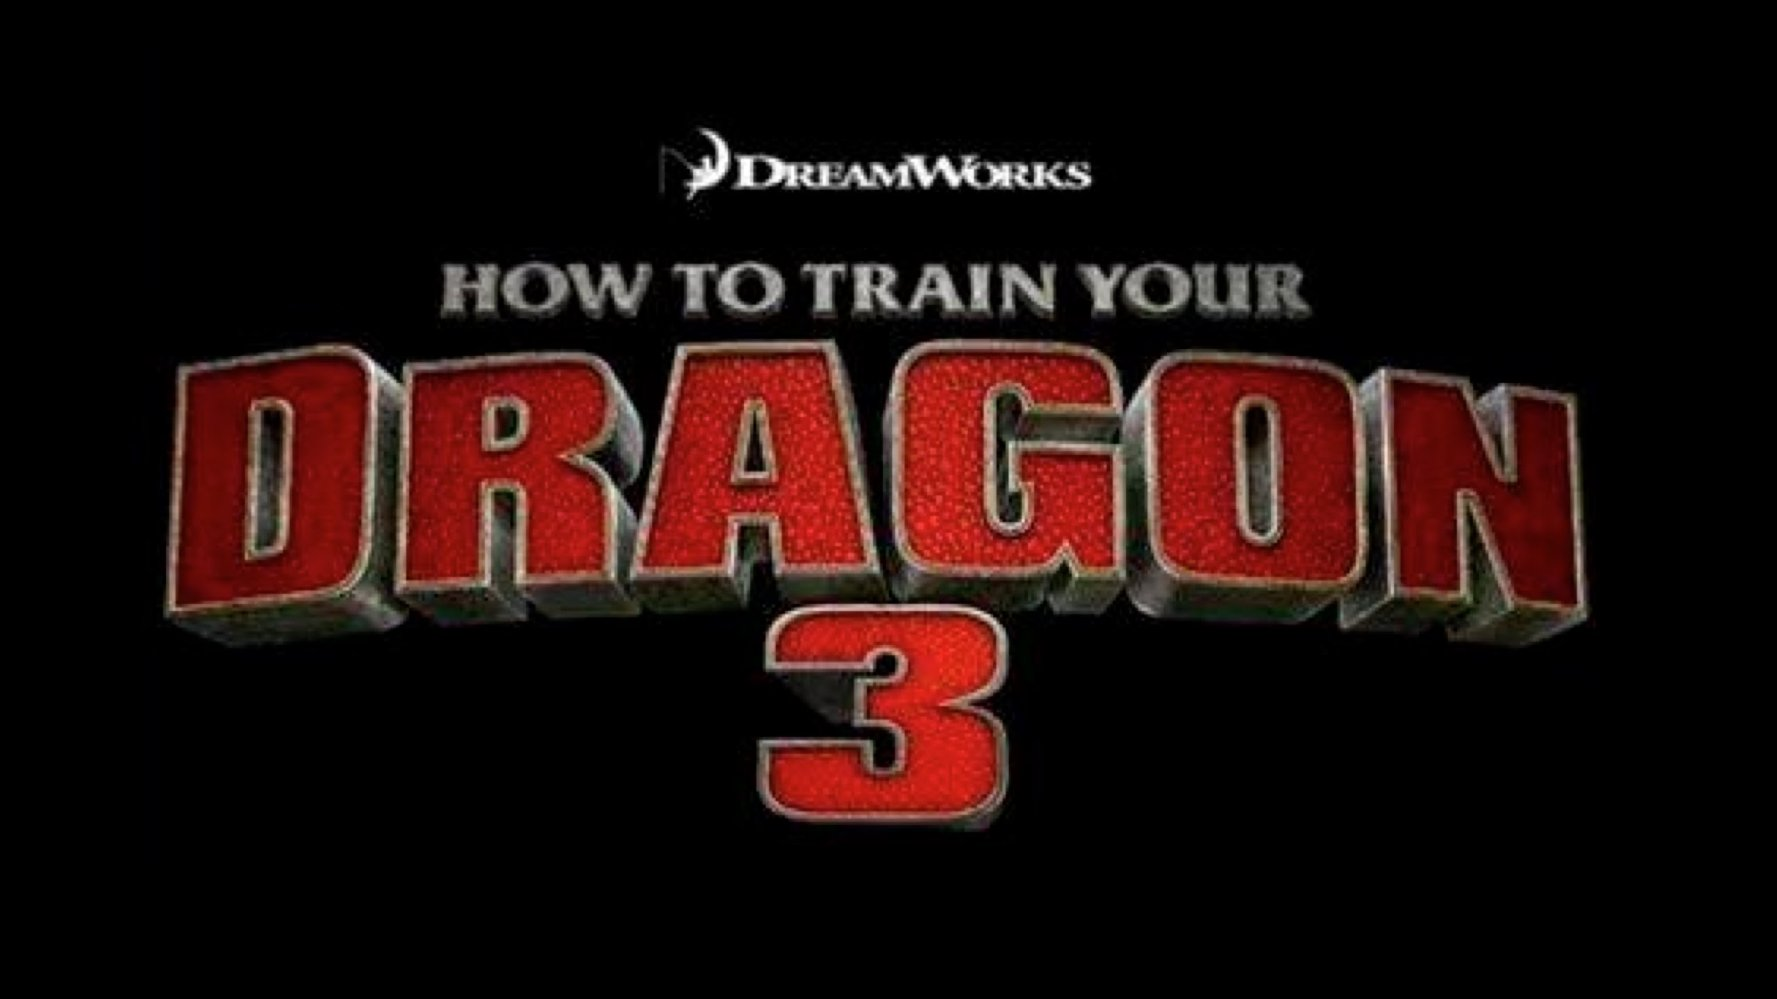 How to train your dragon 3 how to train your dragon wiki how to train your dragon 3 how to train your dragon wiki fandom powered by wikia ccuart Gallery